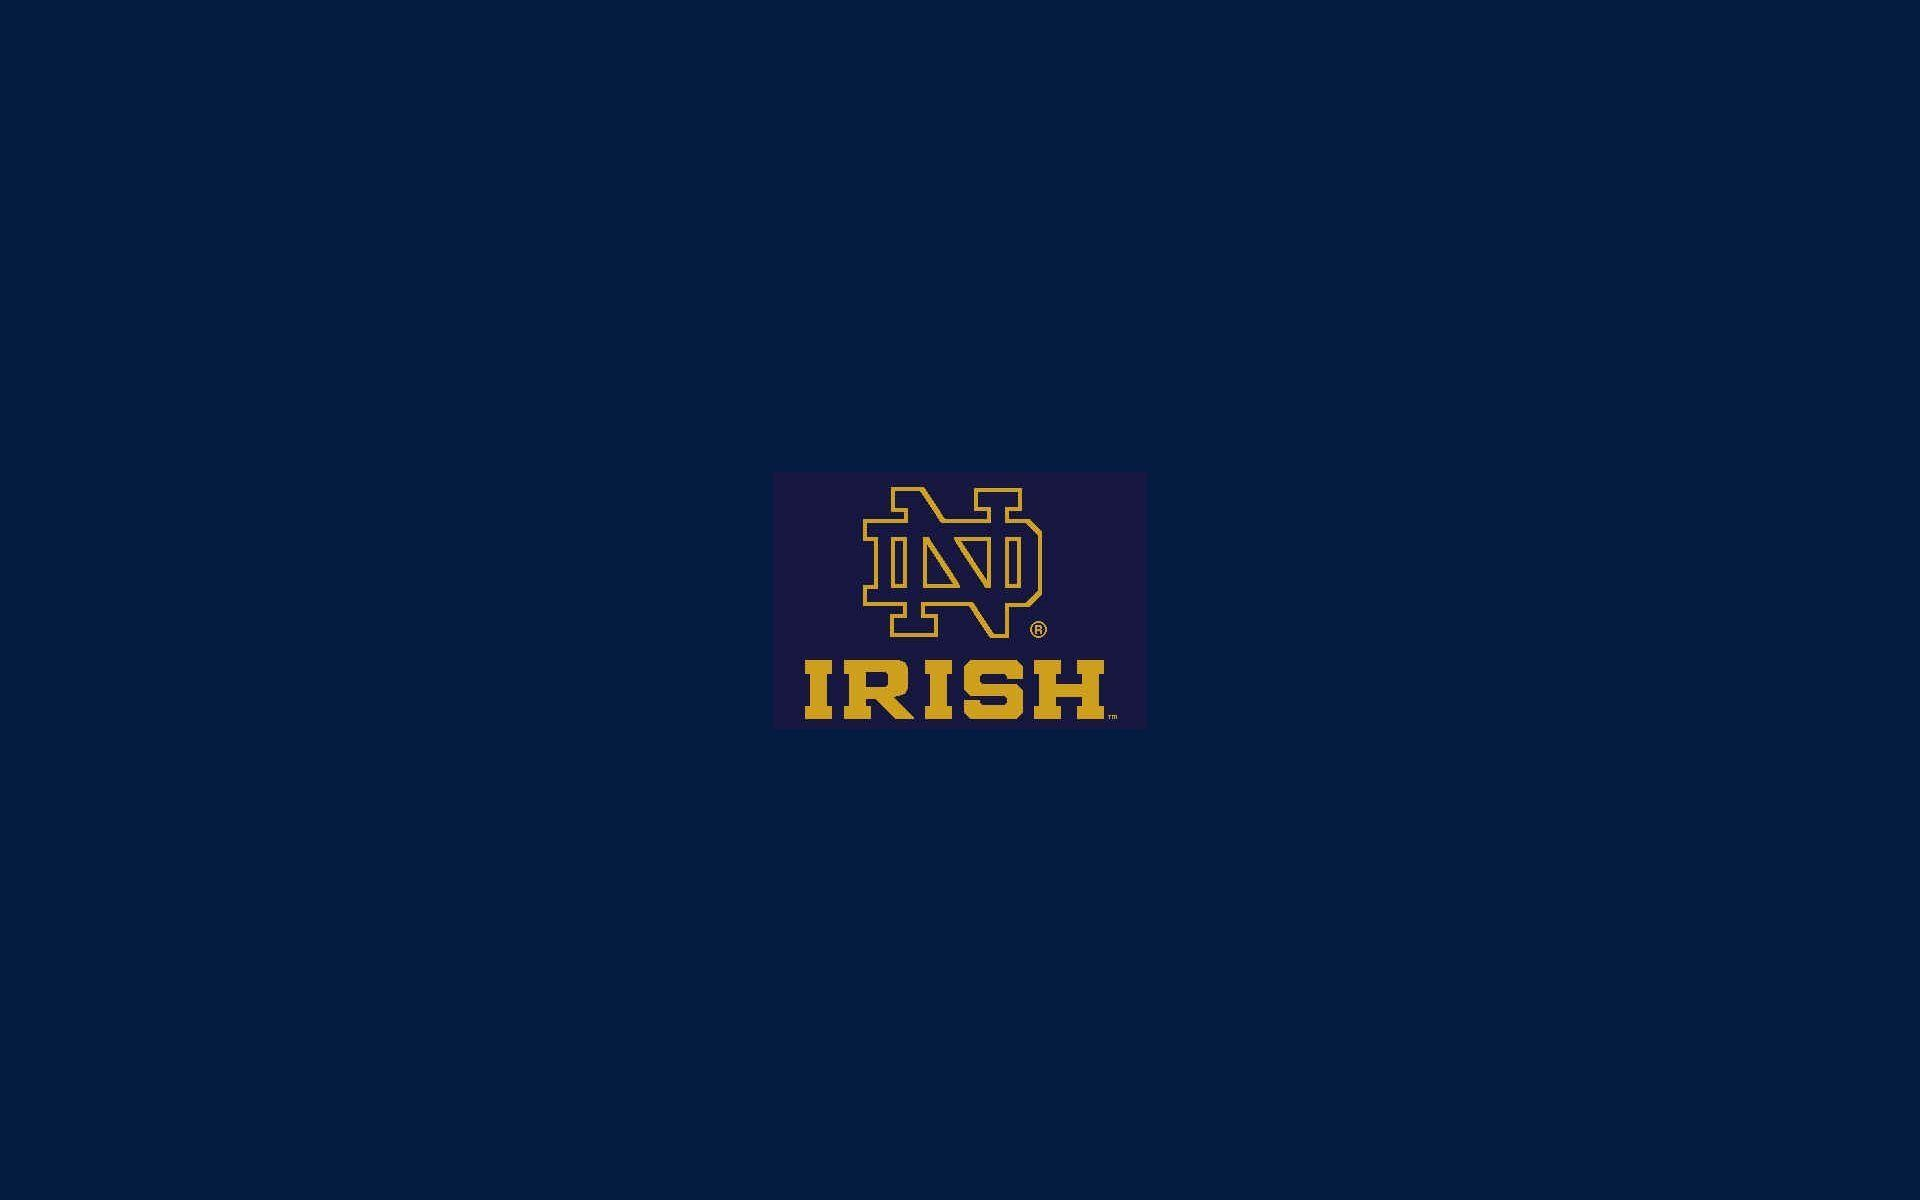 1920x1200 Notre Dame Football Wallpaper - Viewing Gallery